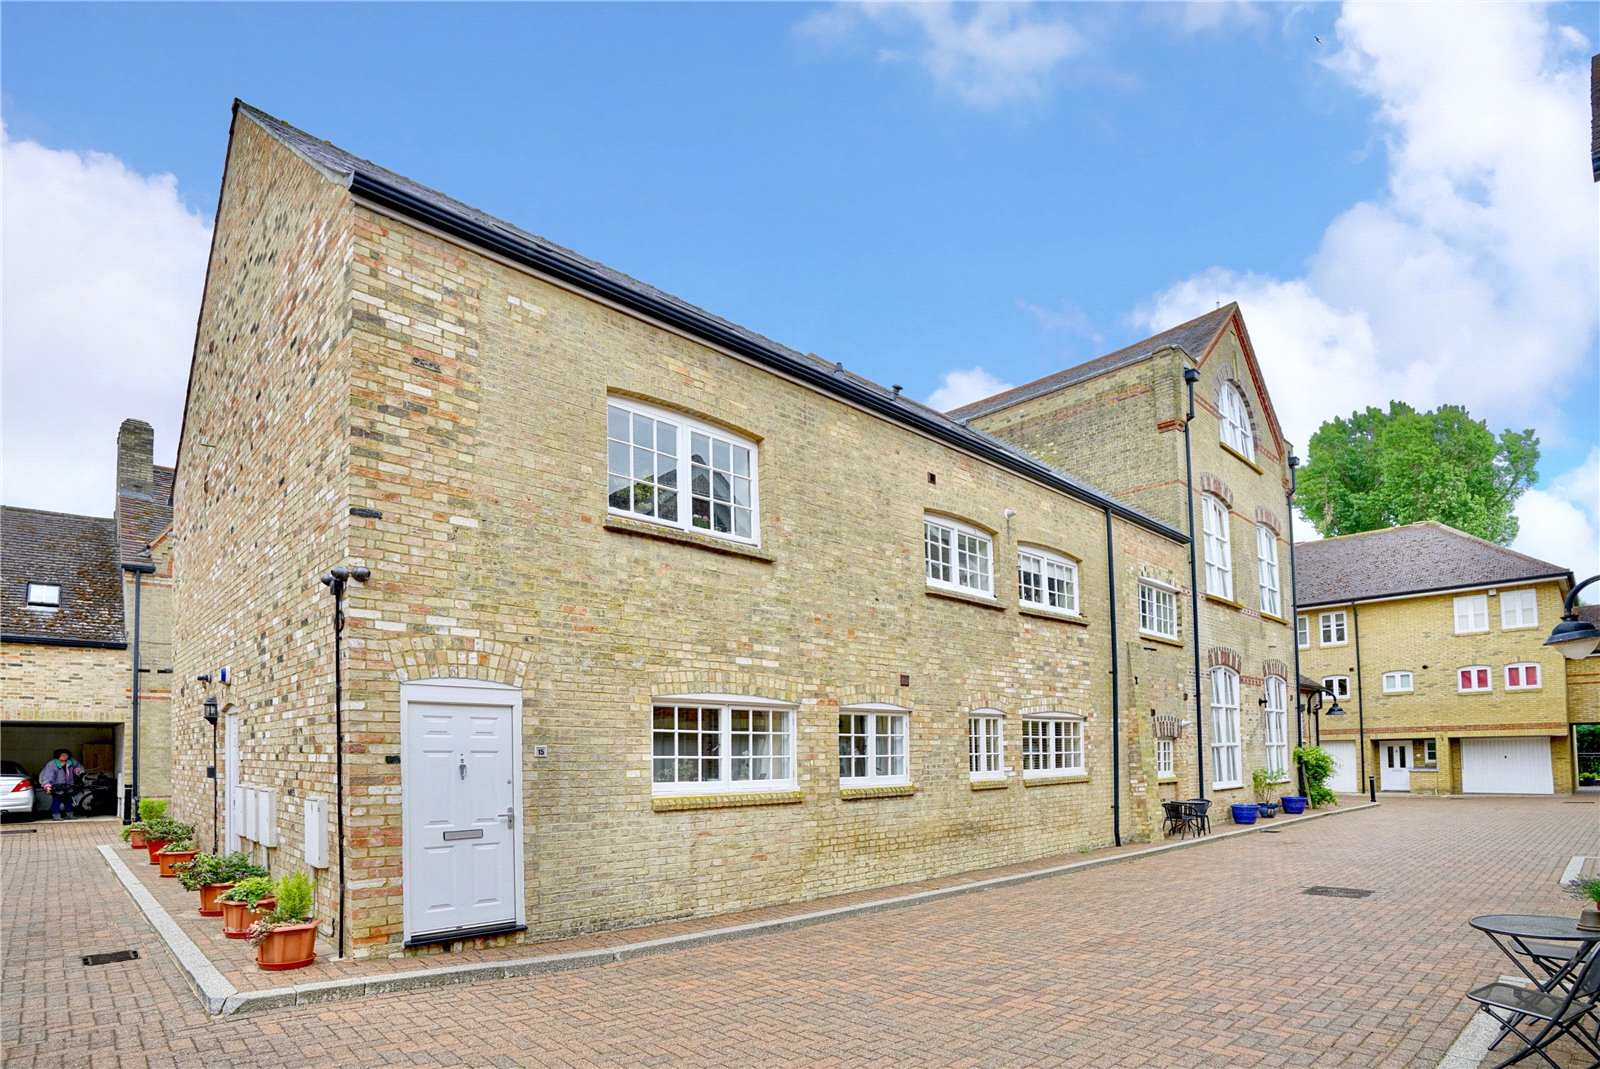 3 bed apartment for sale in Chandlers Wharf, St. Neots 0